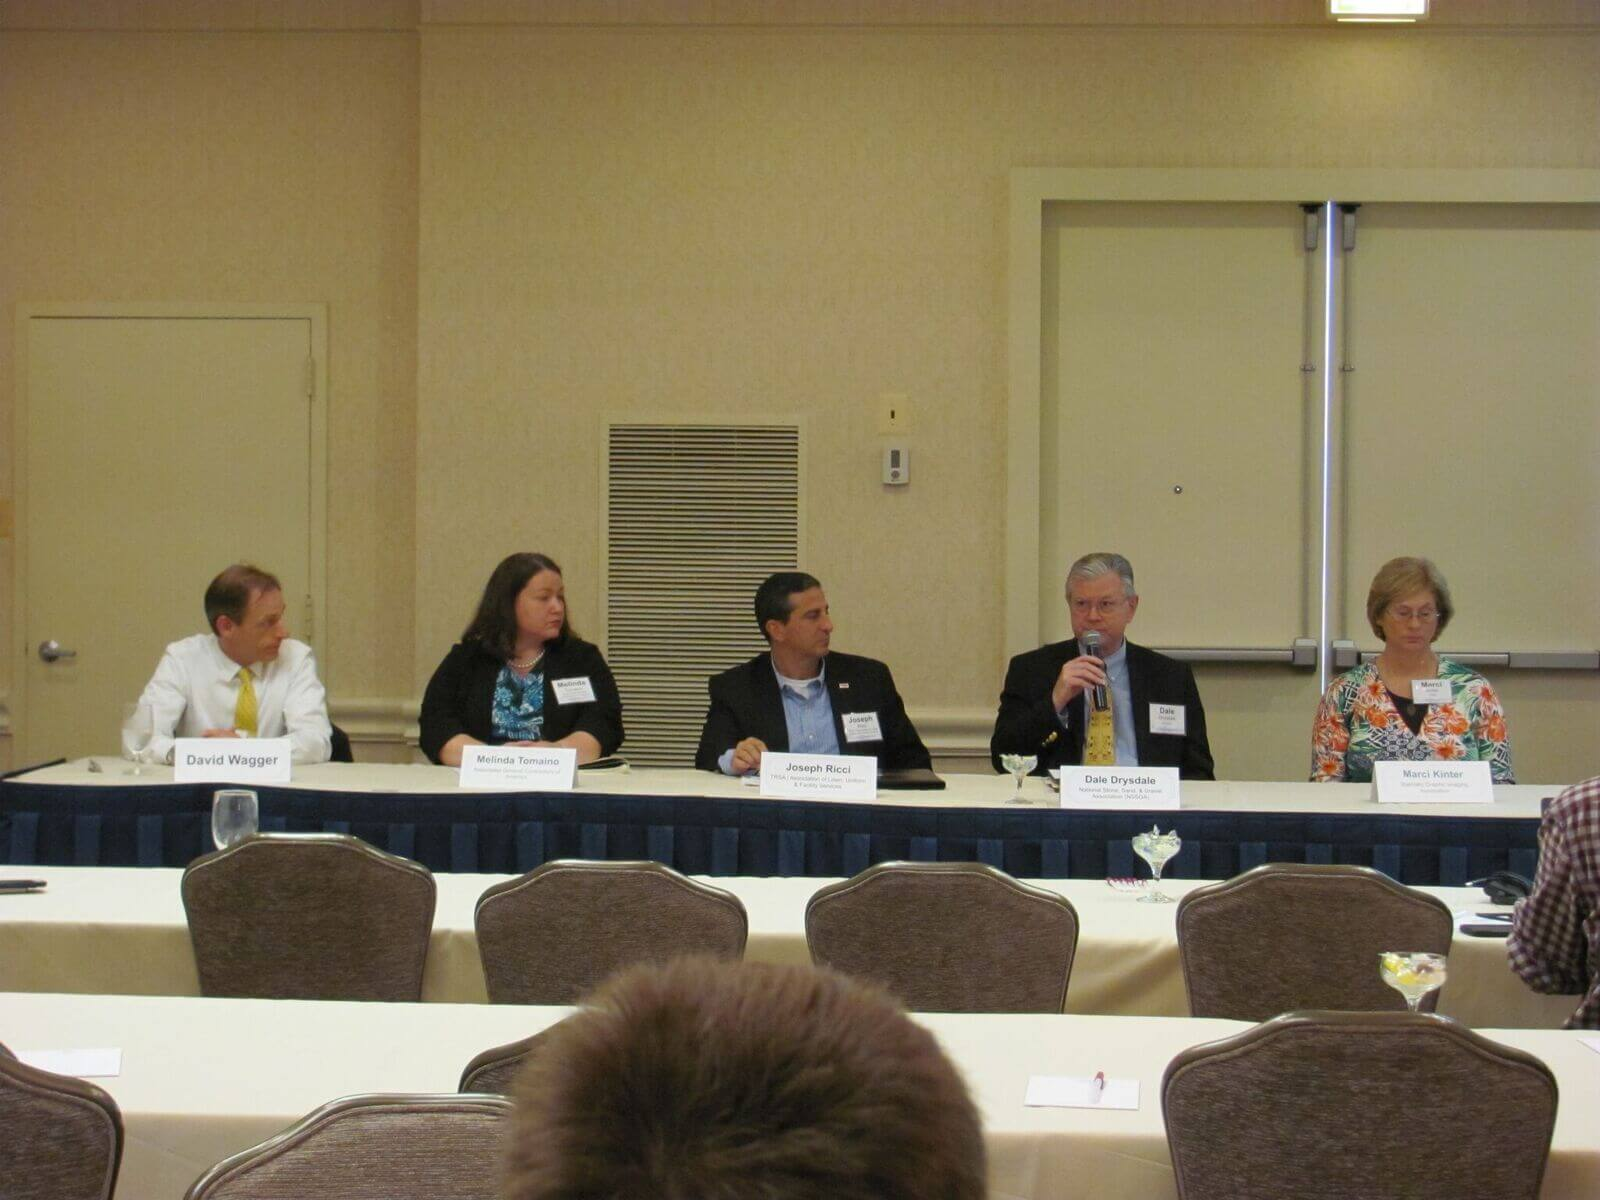 Image of panel speakers.